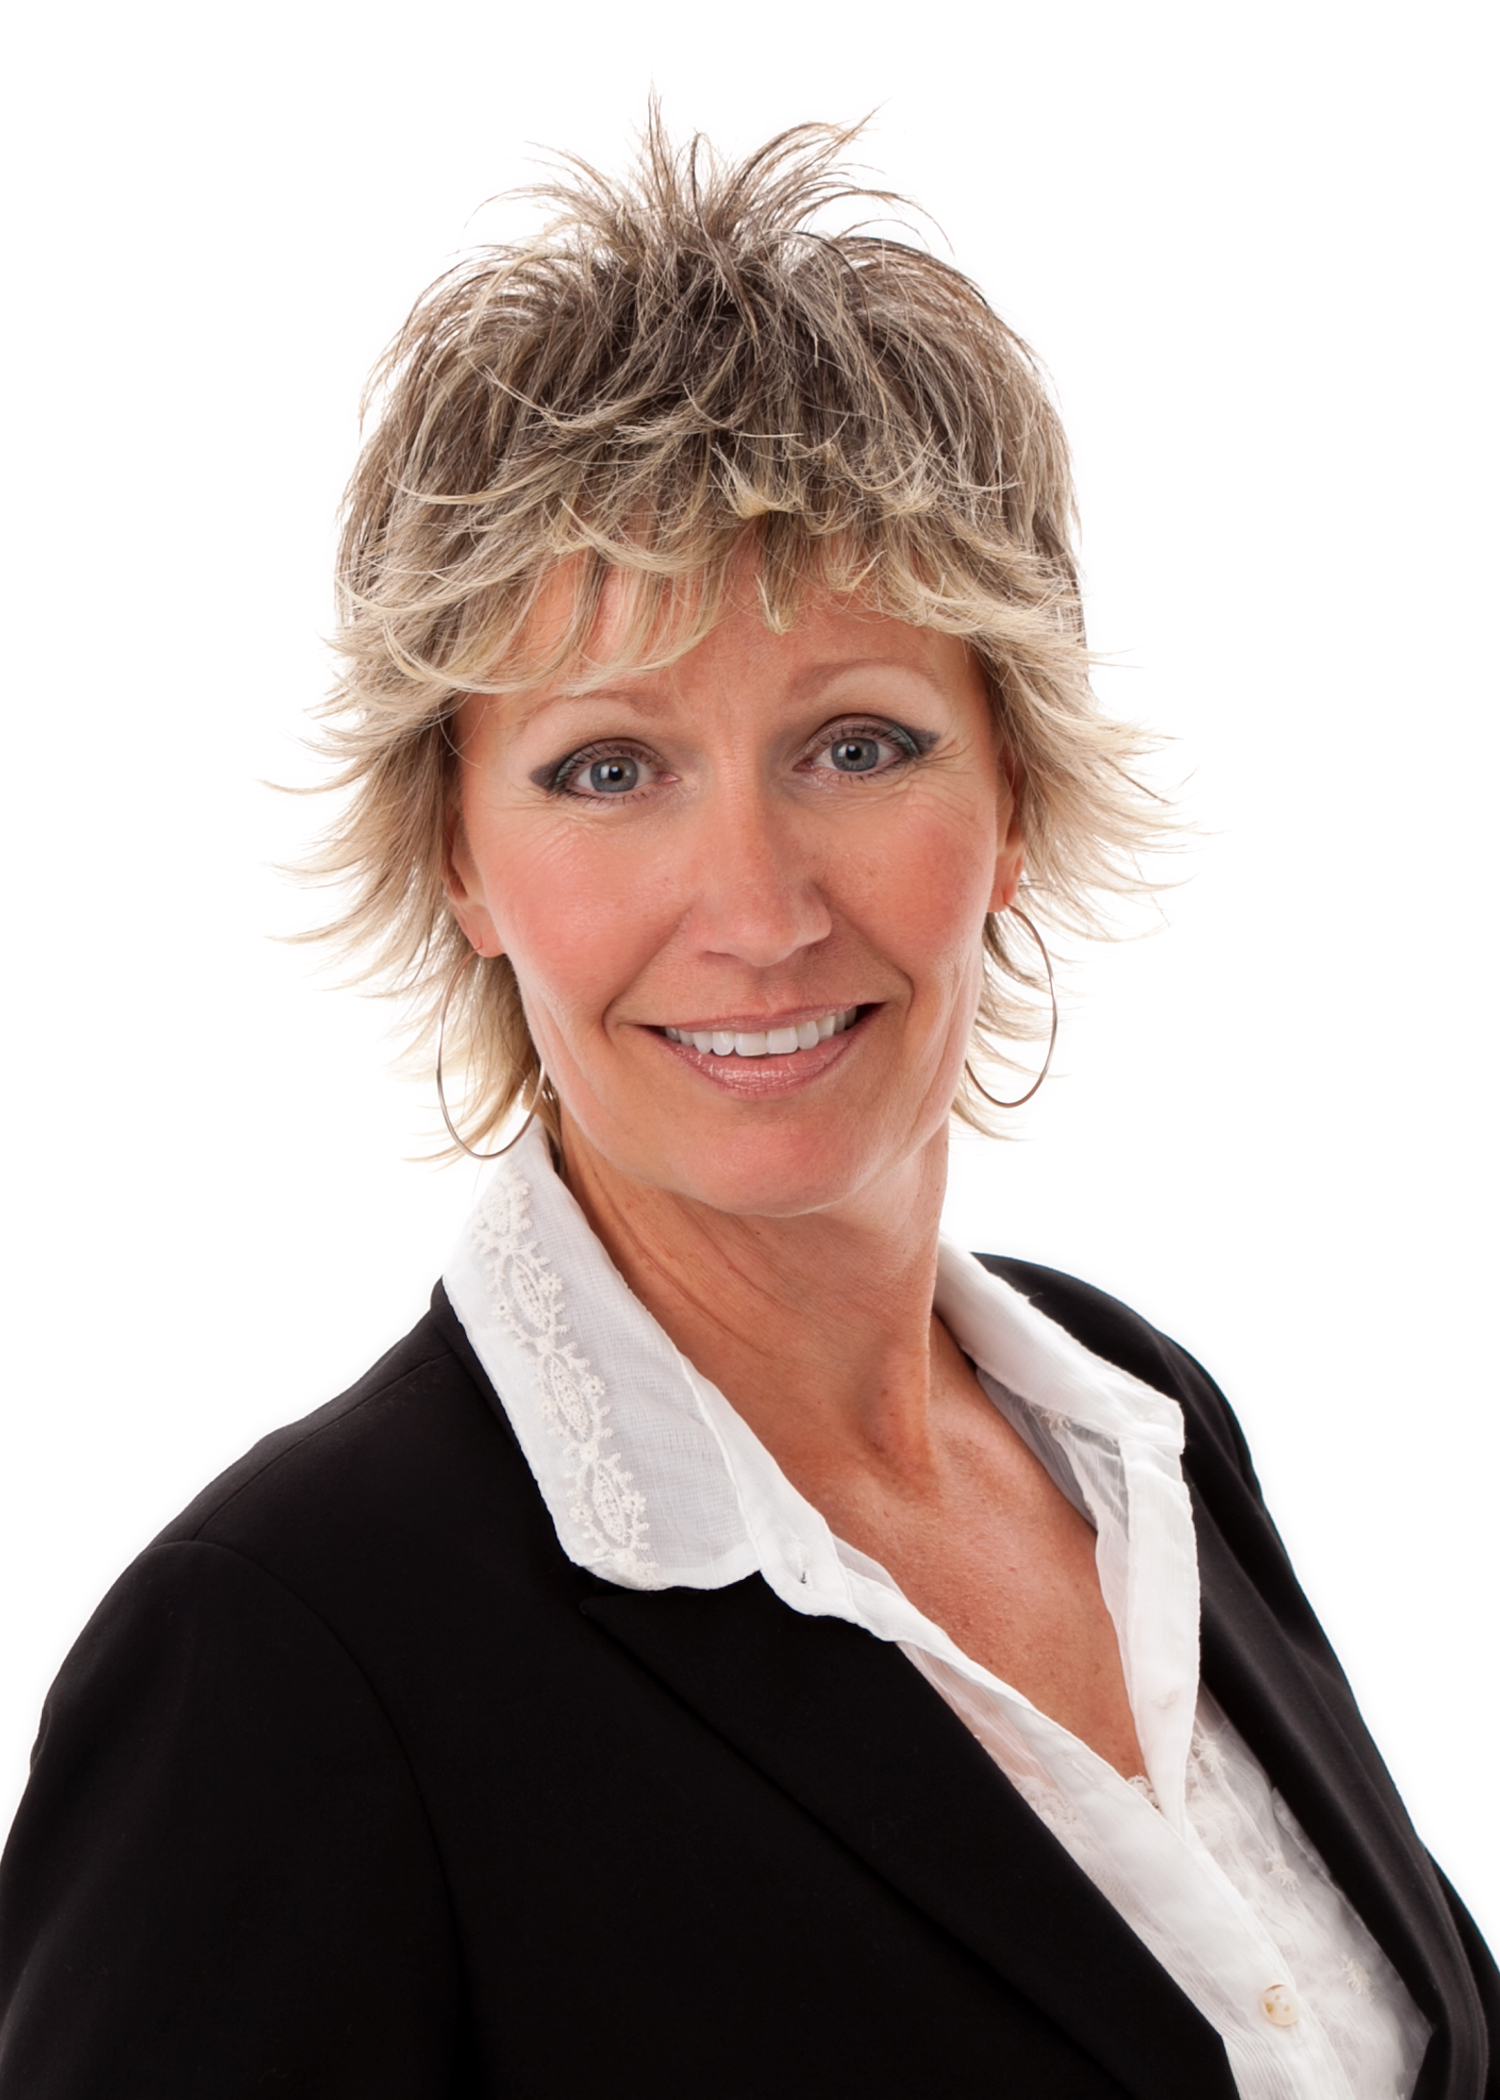 vickie van kempen  real estate agent - edina  mn